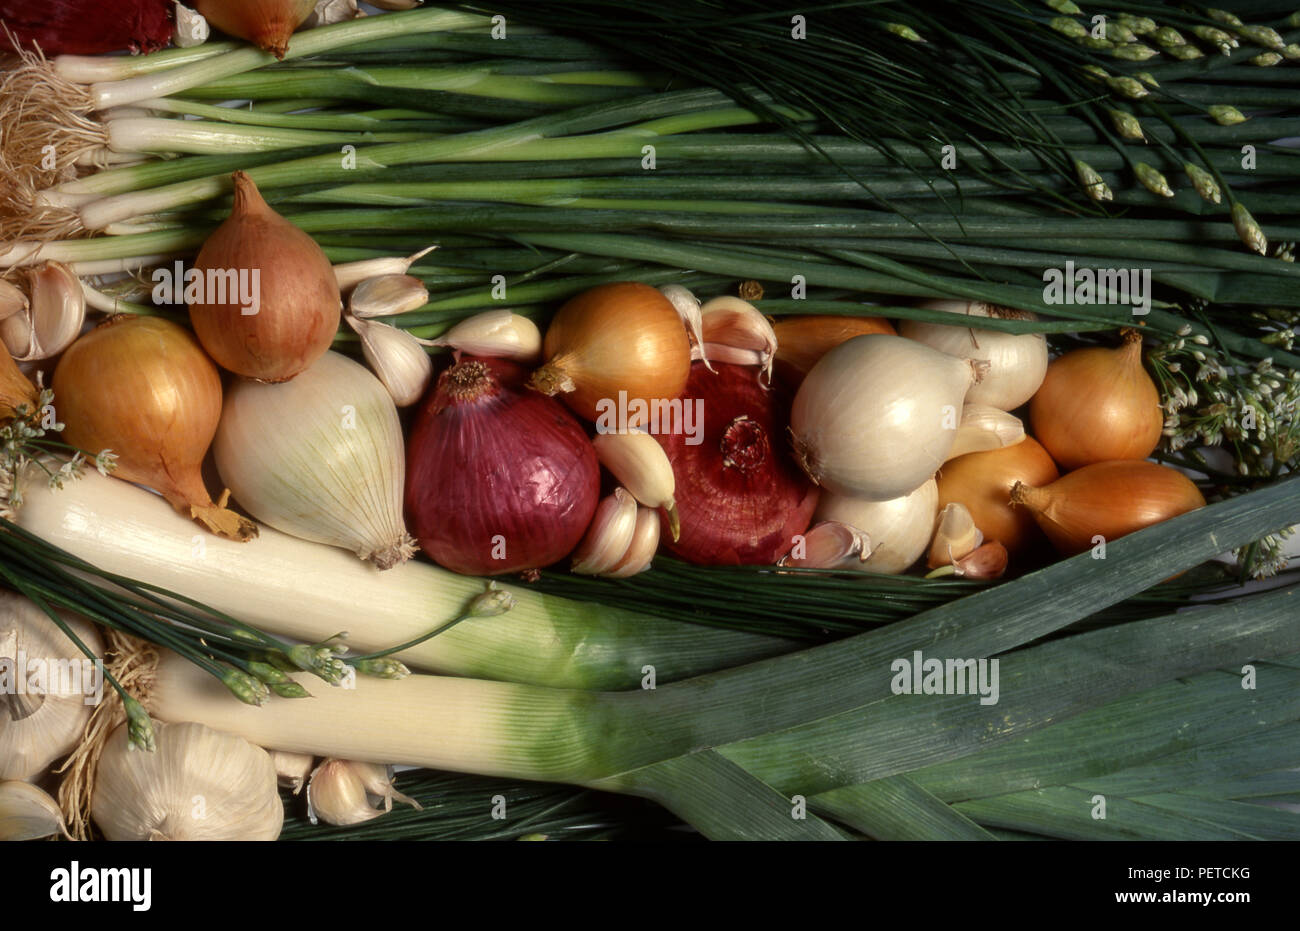 Assorted arrangement of fresh vegetables (Chives, garlic chives, shallots, onions, garlic and leeks - Stock Image